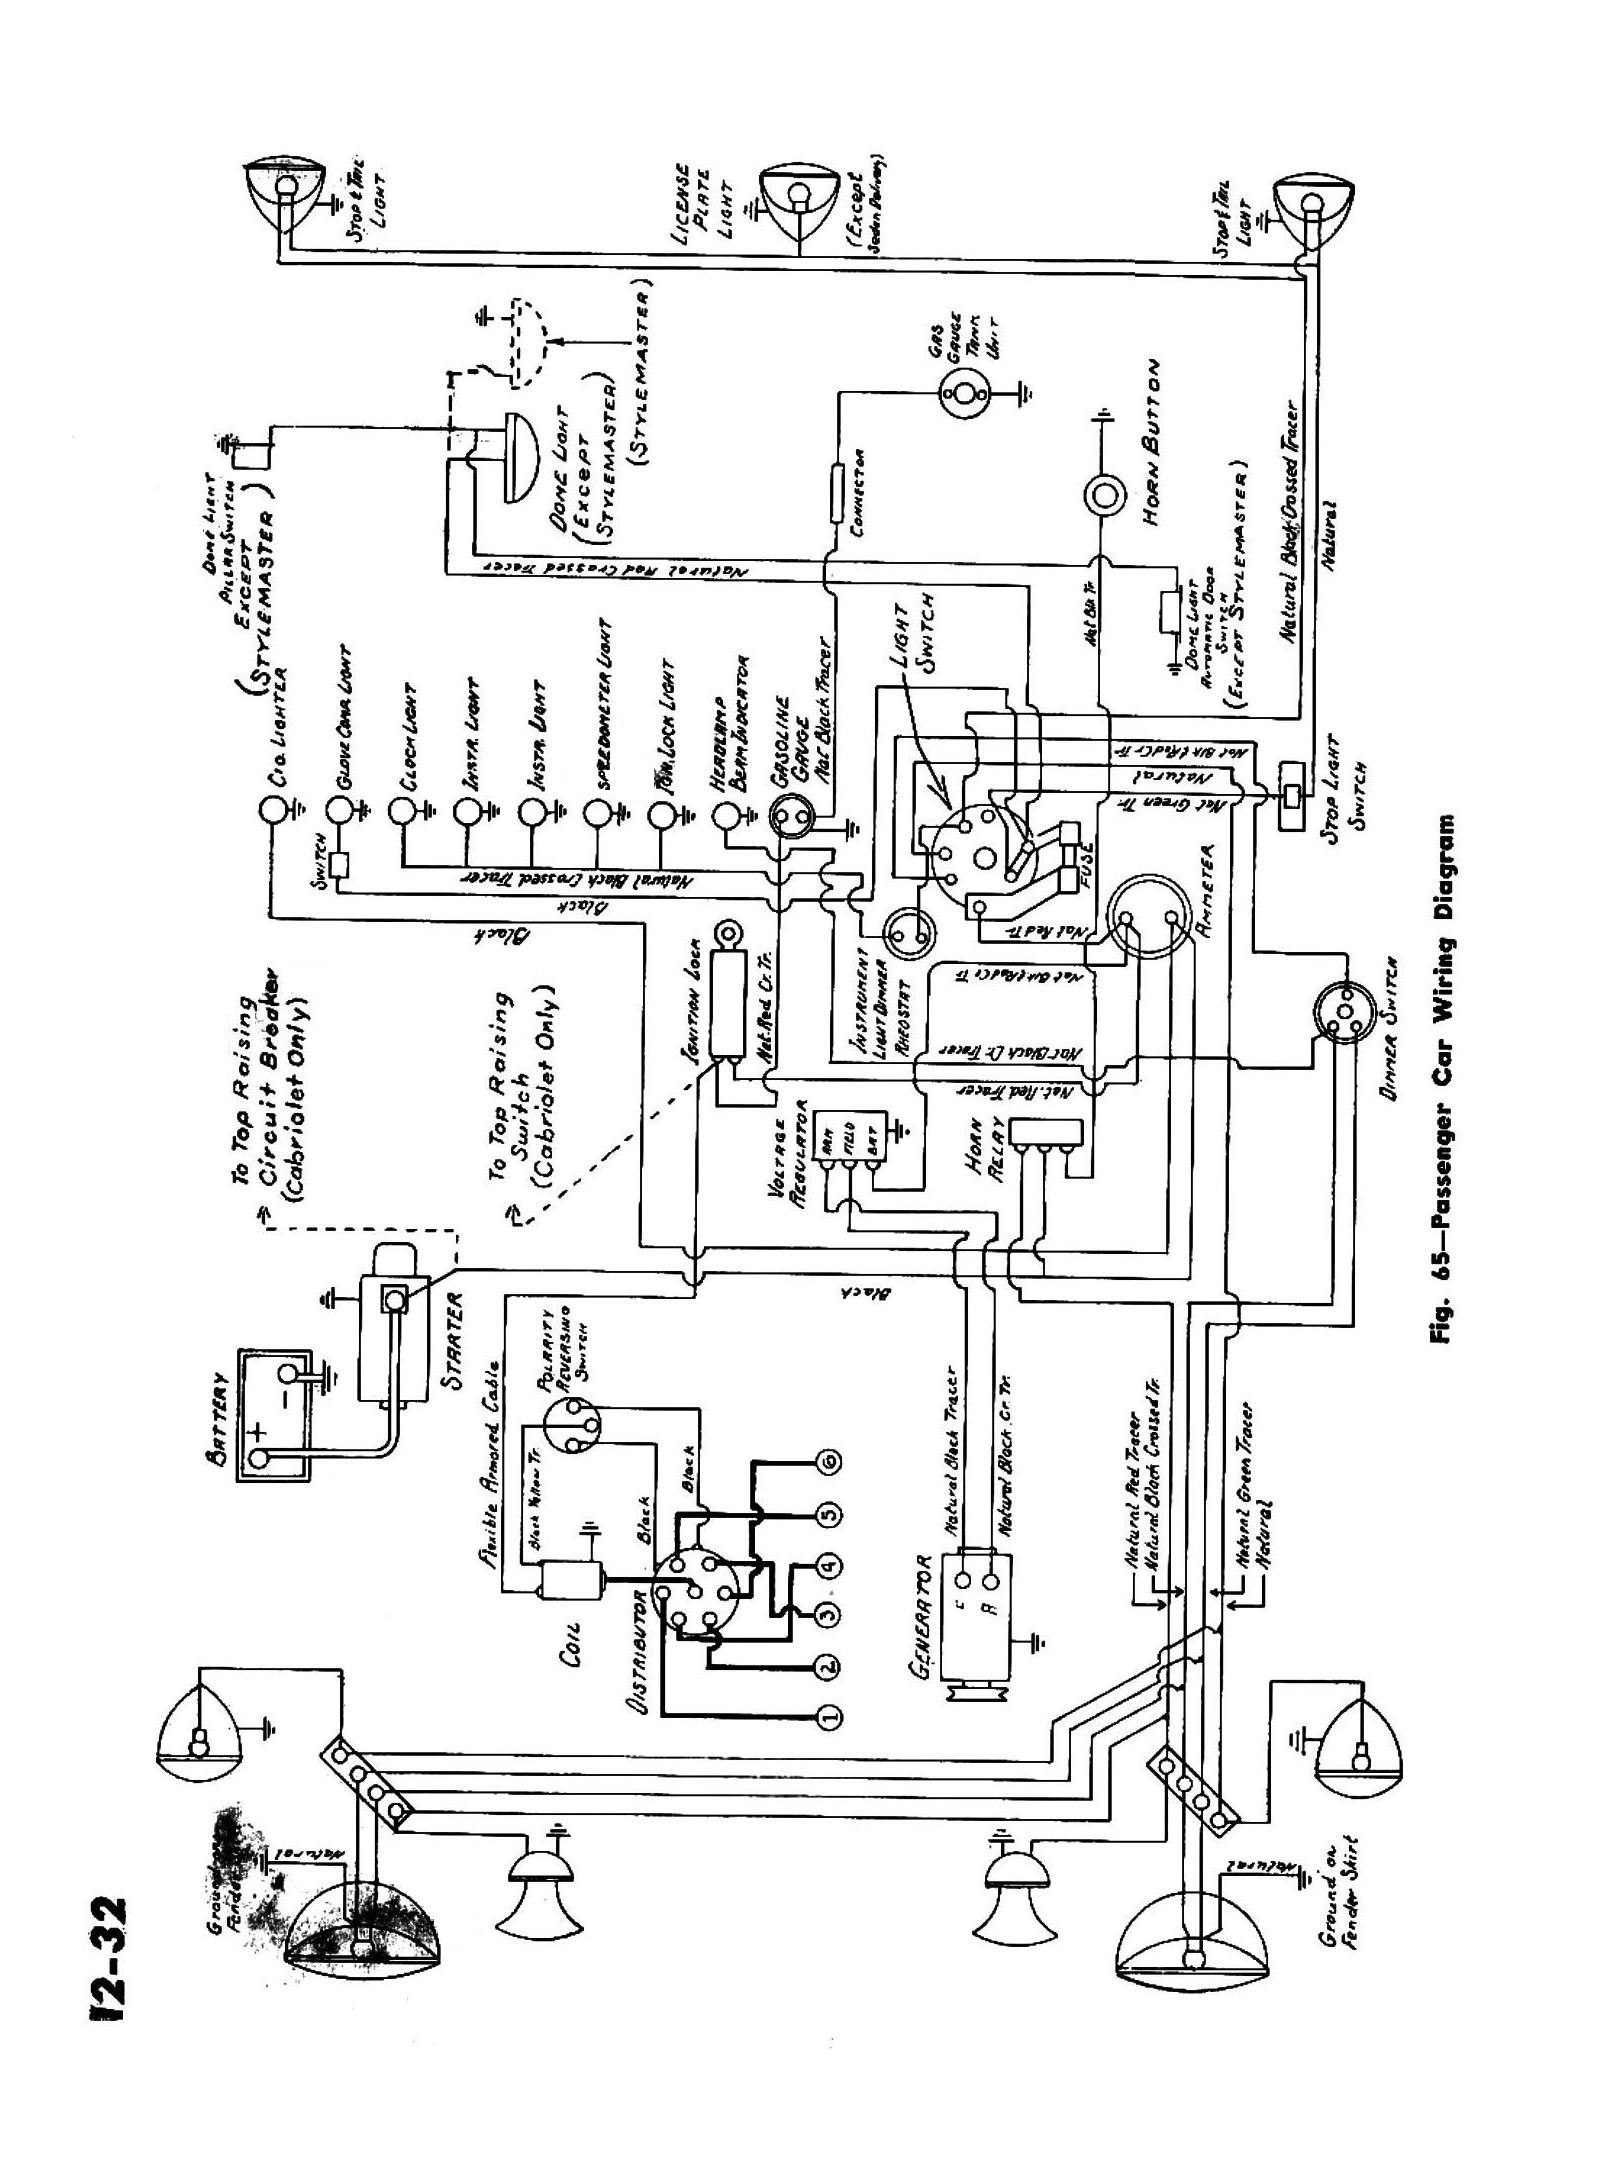 45car chevy wiring diagrams wiring schematics for cars at panicattacktreatment.co